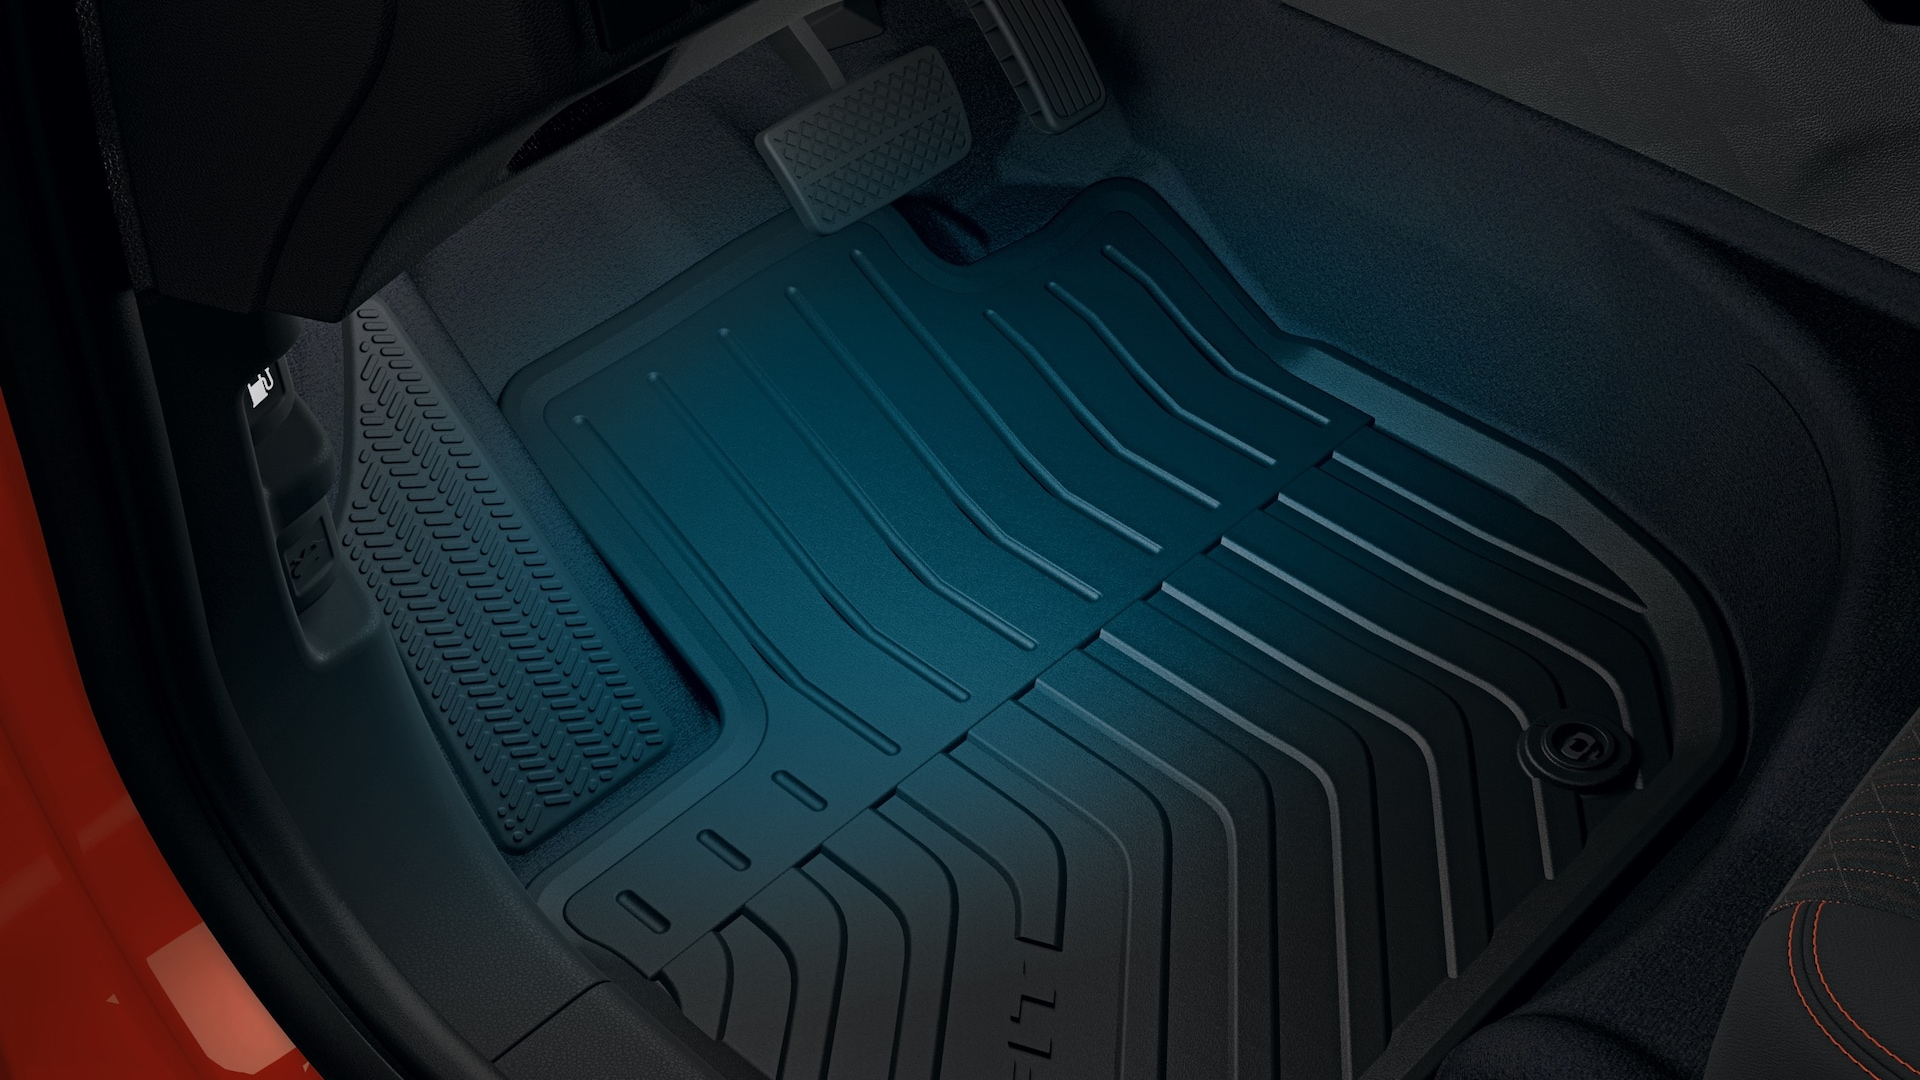 Interior view of blue LED illuminated footwell detail on the 2020 Honda Fit.